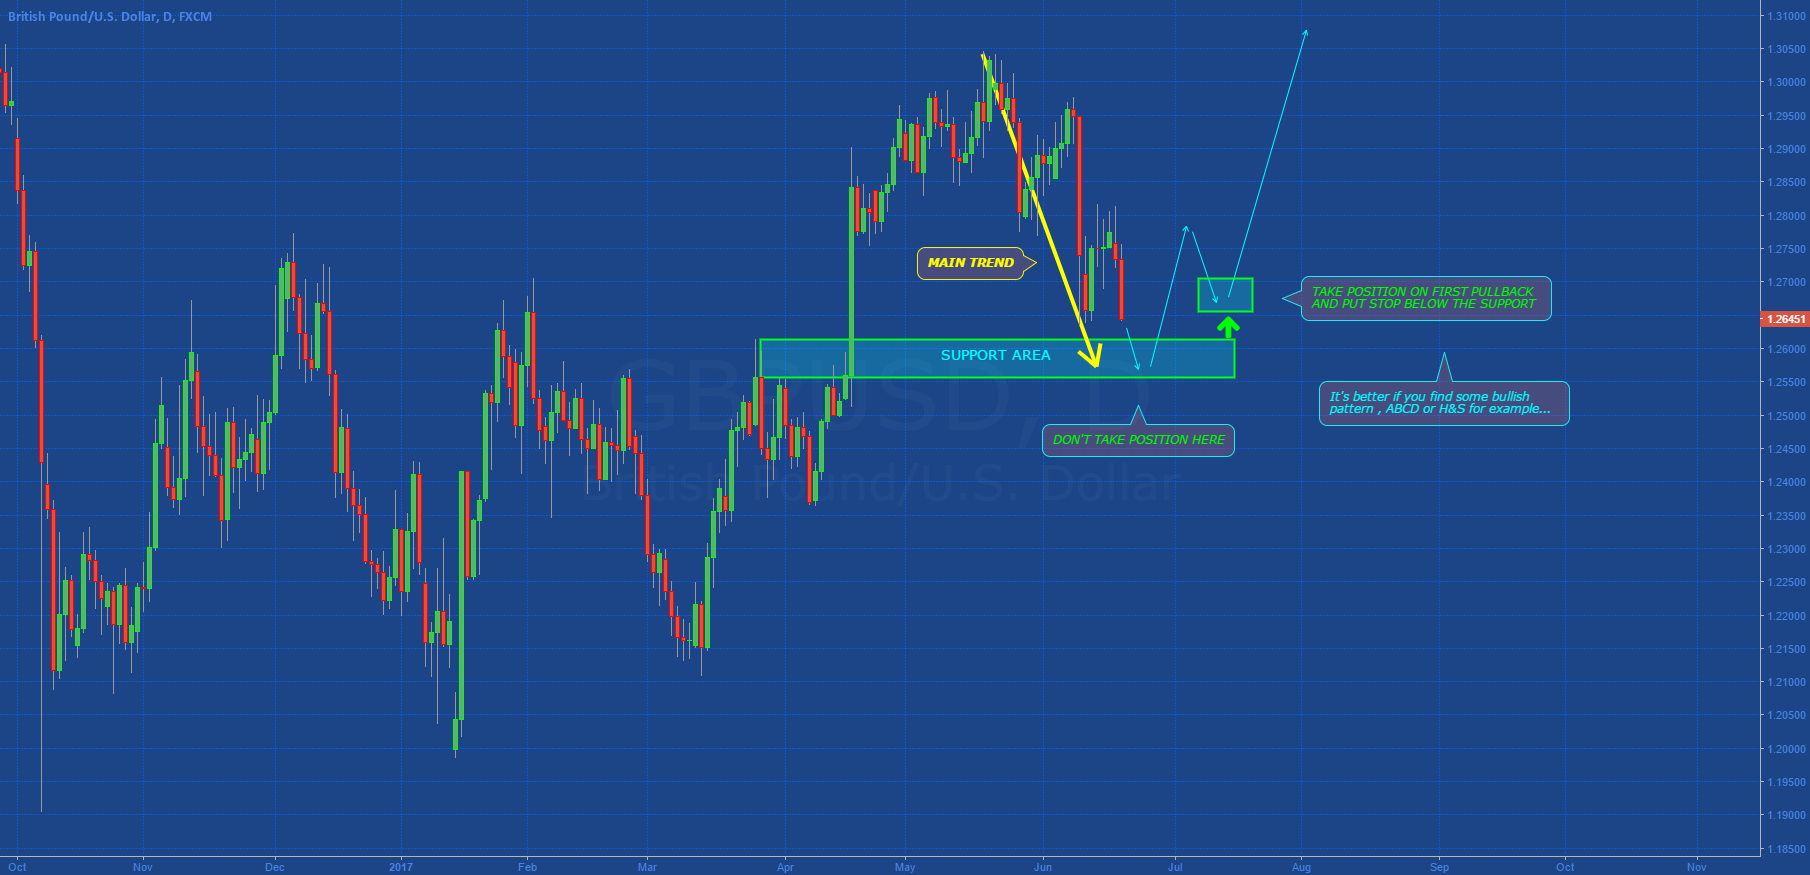 [GBPUSD] HOW TO TRADE A SUPPORT